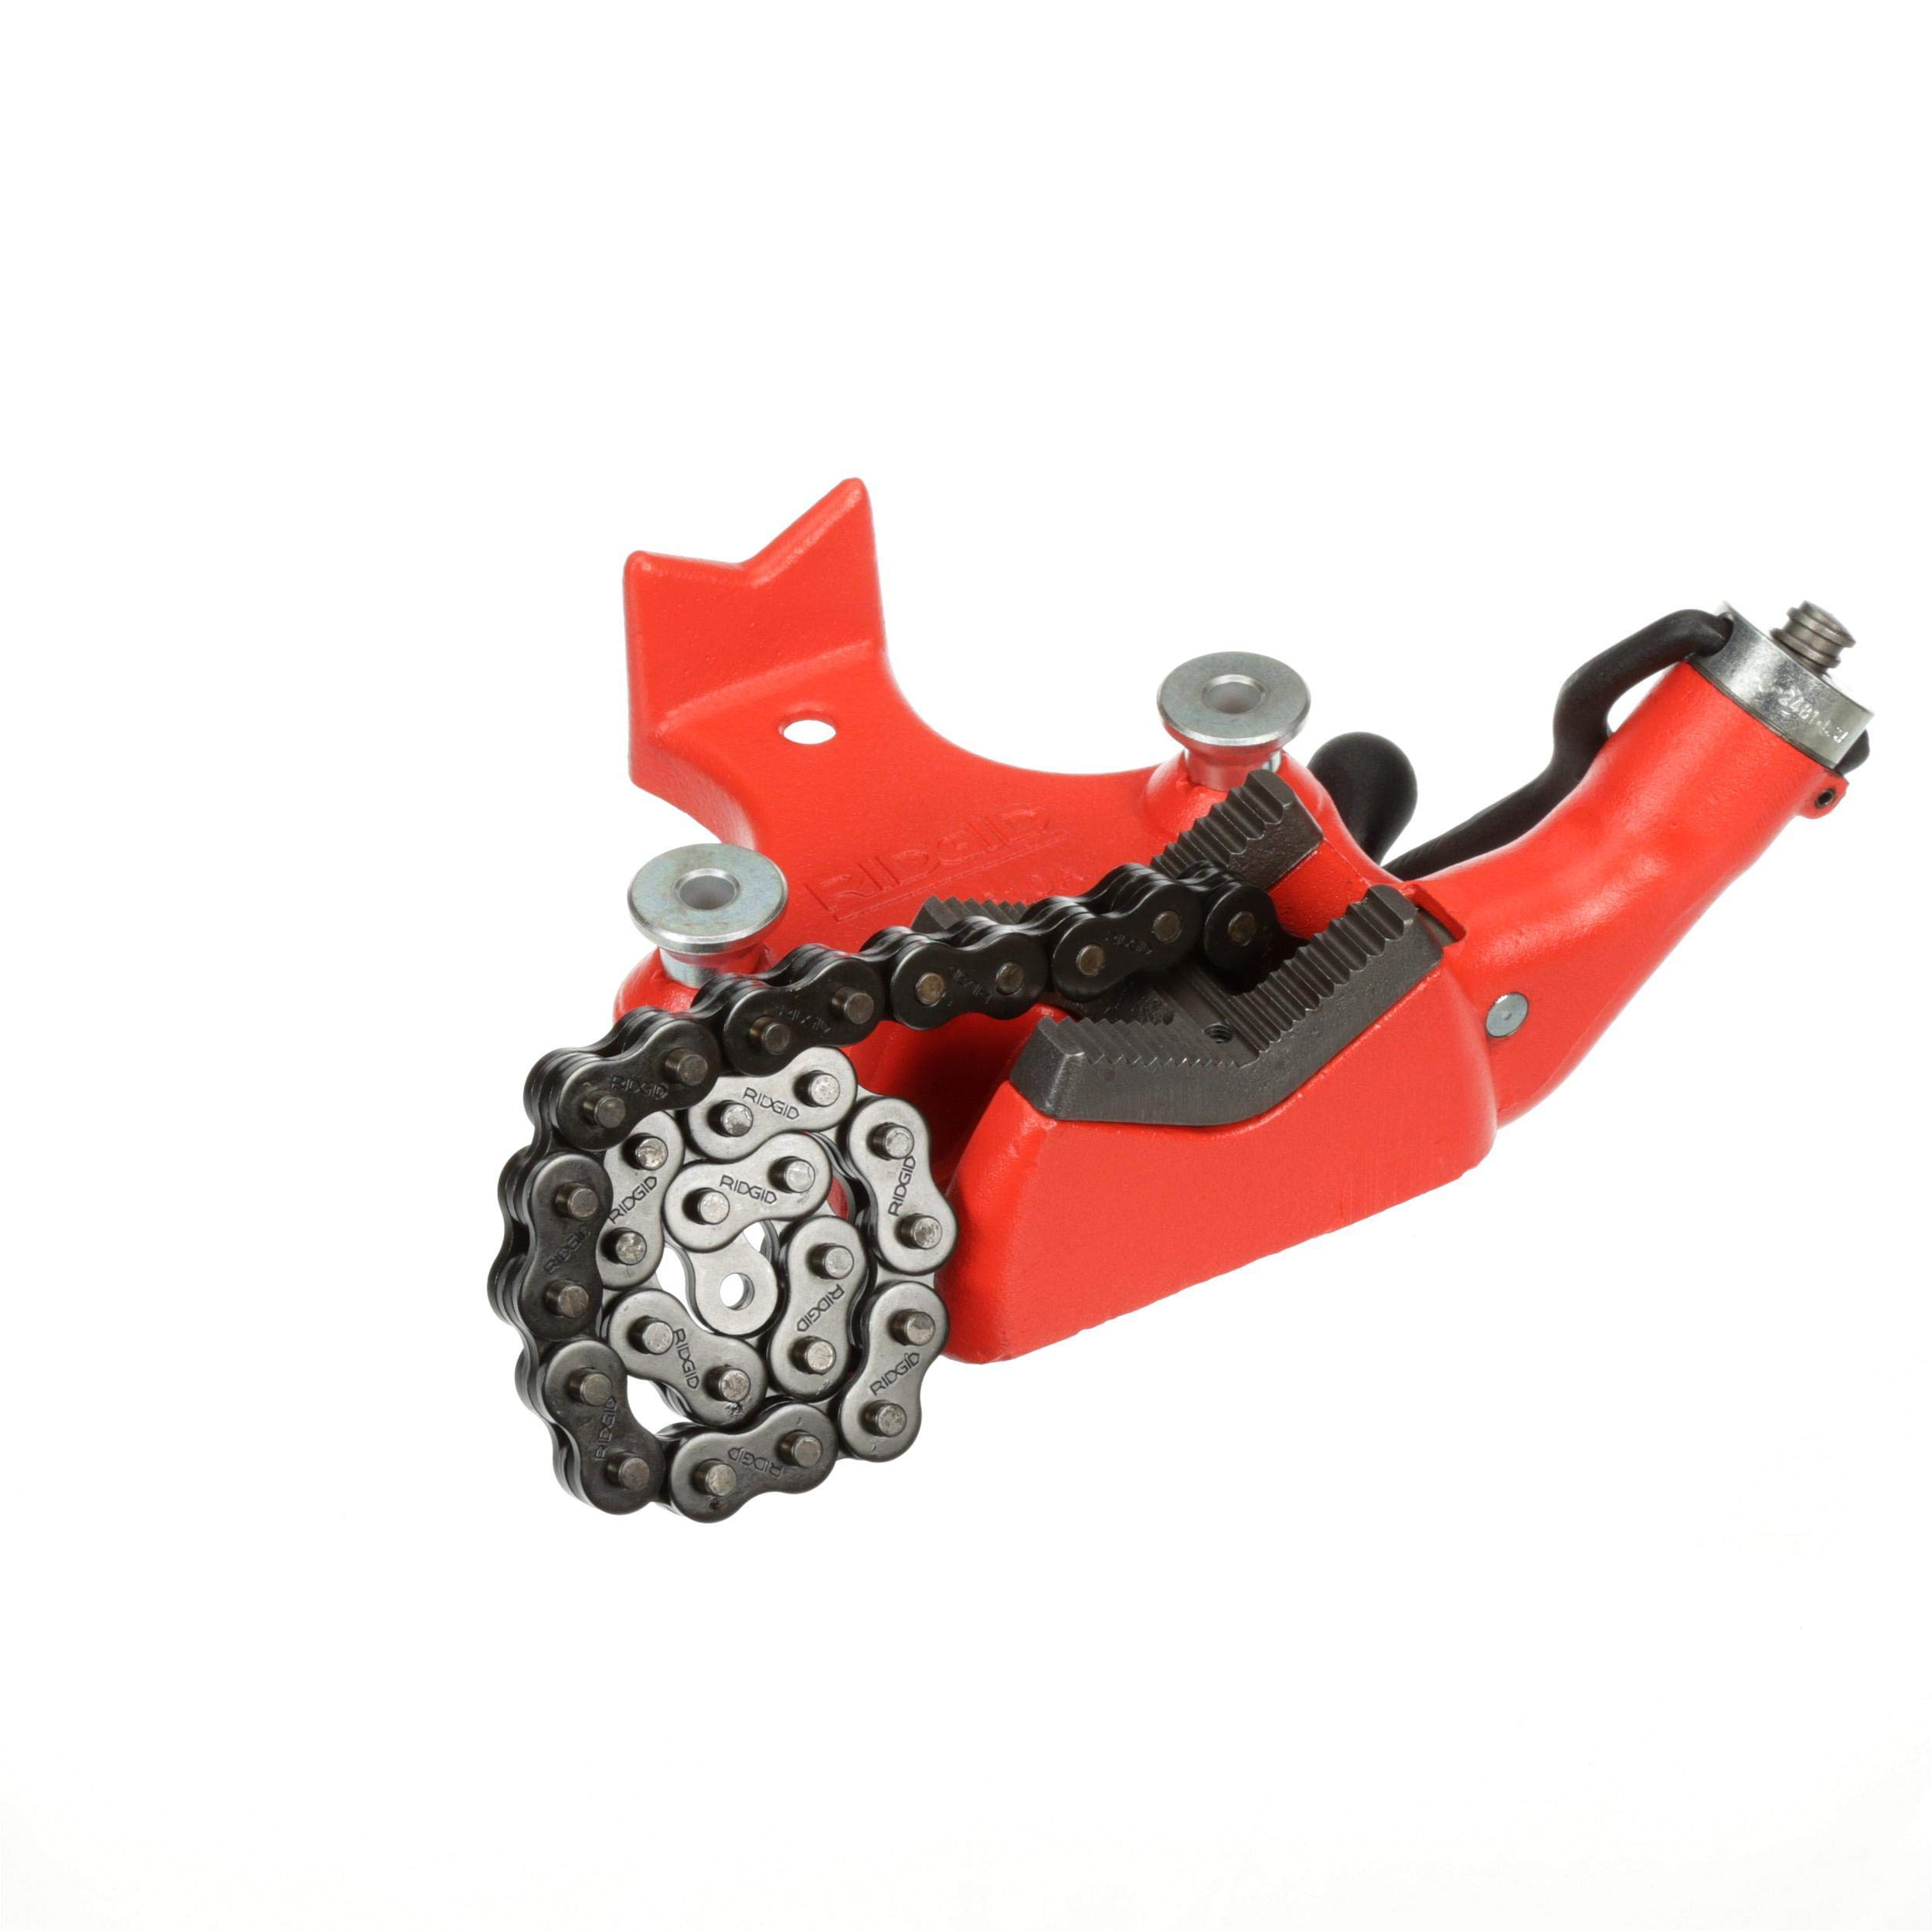 RIDGID 40210 Model BC610 Top Screw Bench Chain Vise, 1/4-inch to 6-inch Bench Vise by Ridgid (Image #1)